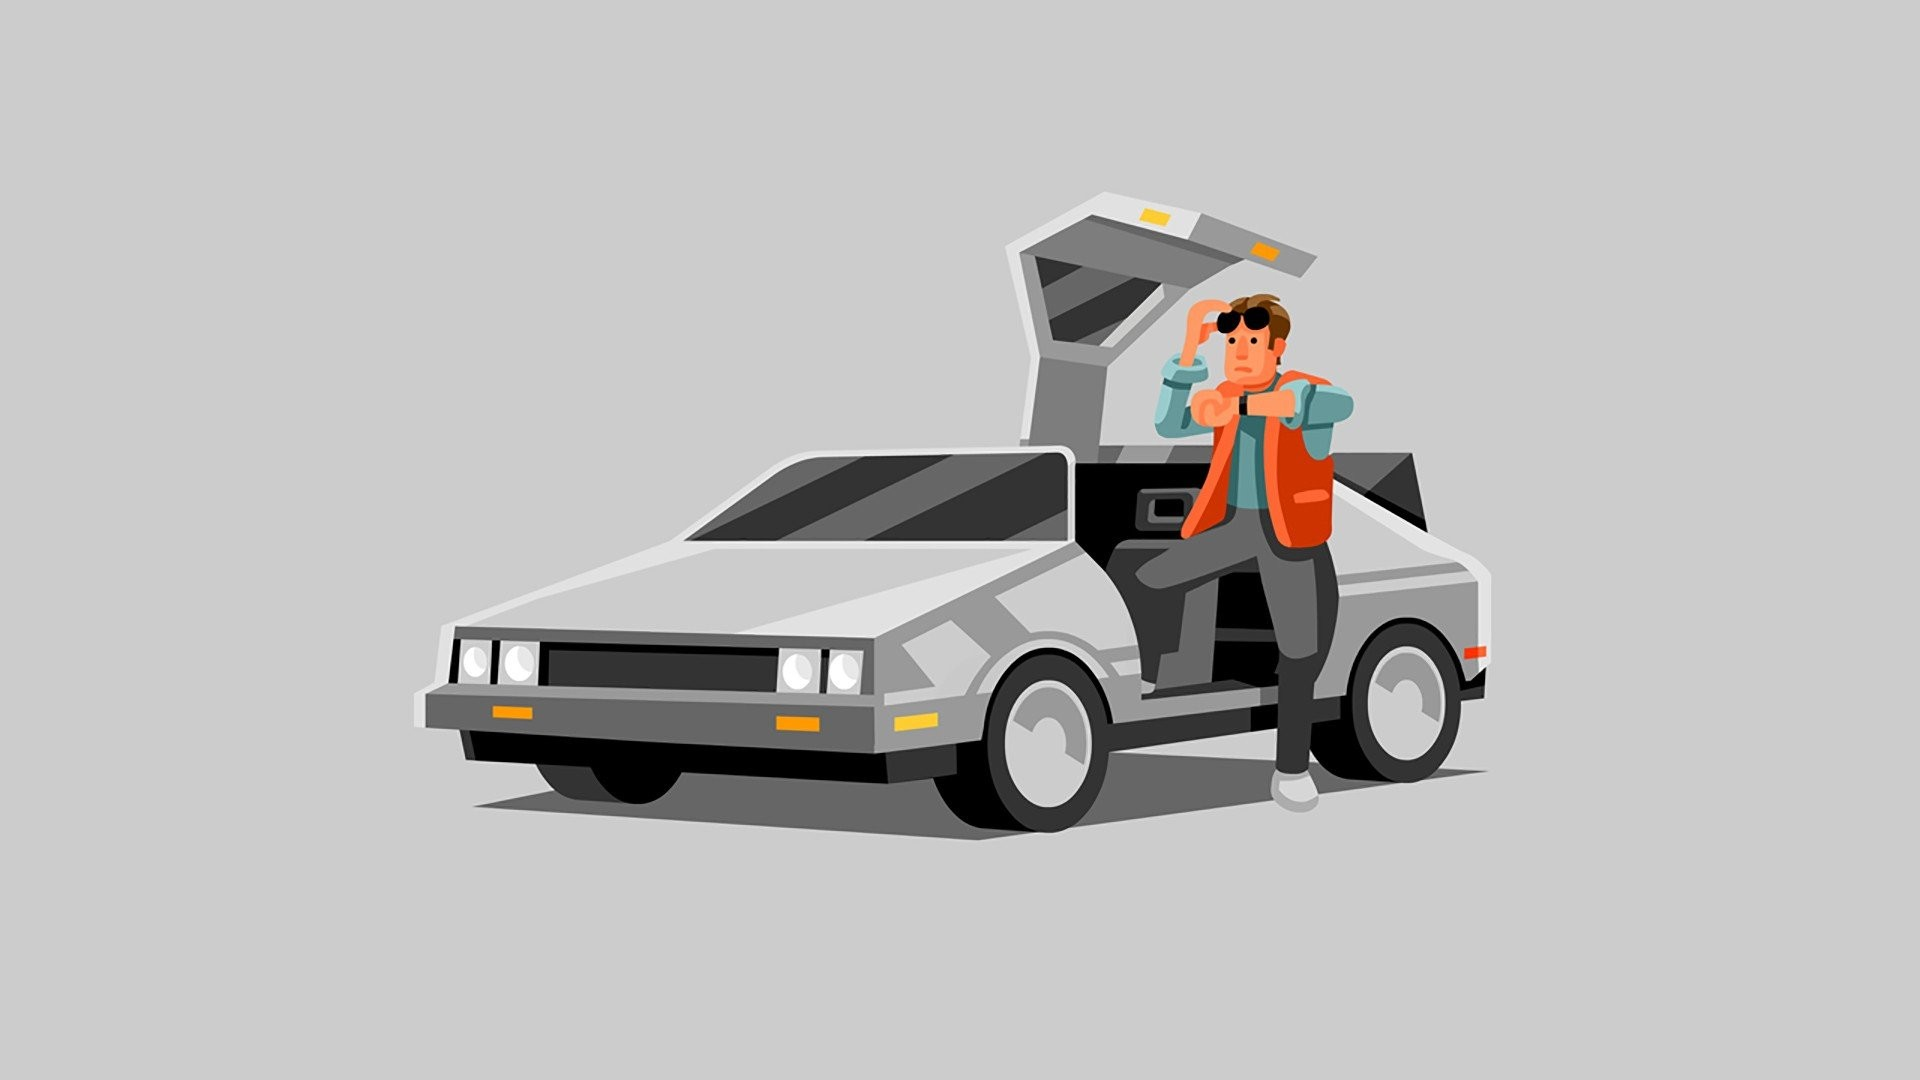 1920x1080 DeLorean, Back to the Future